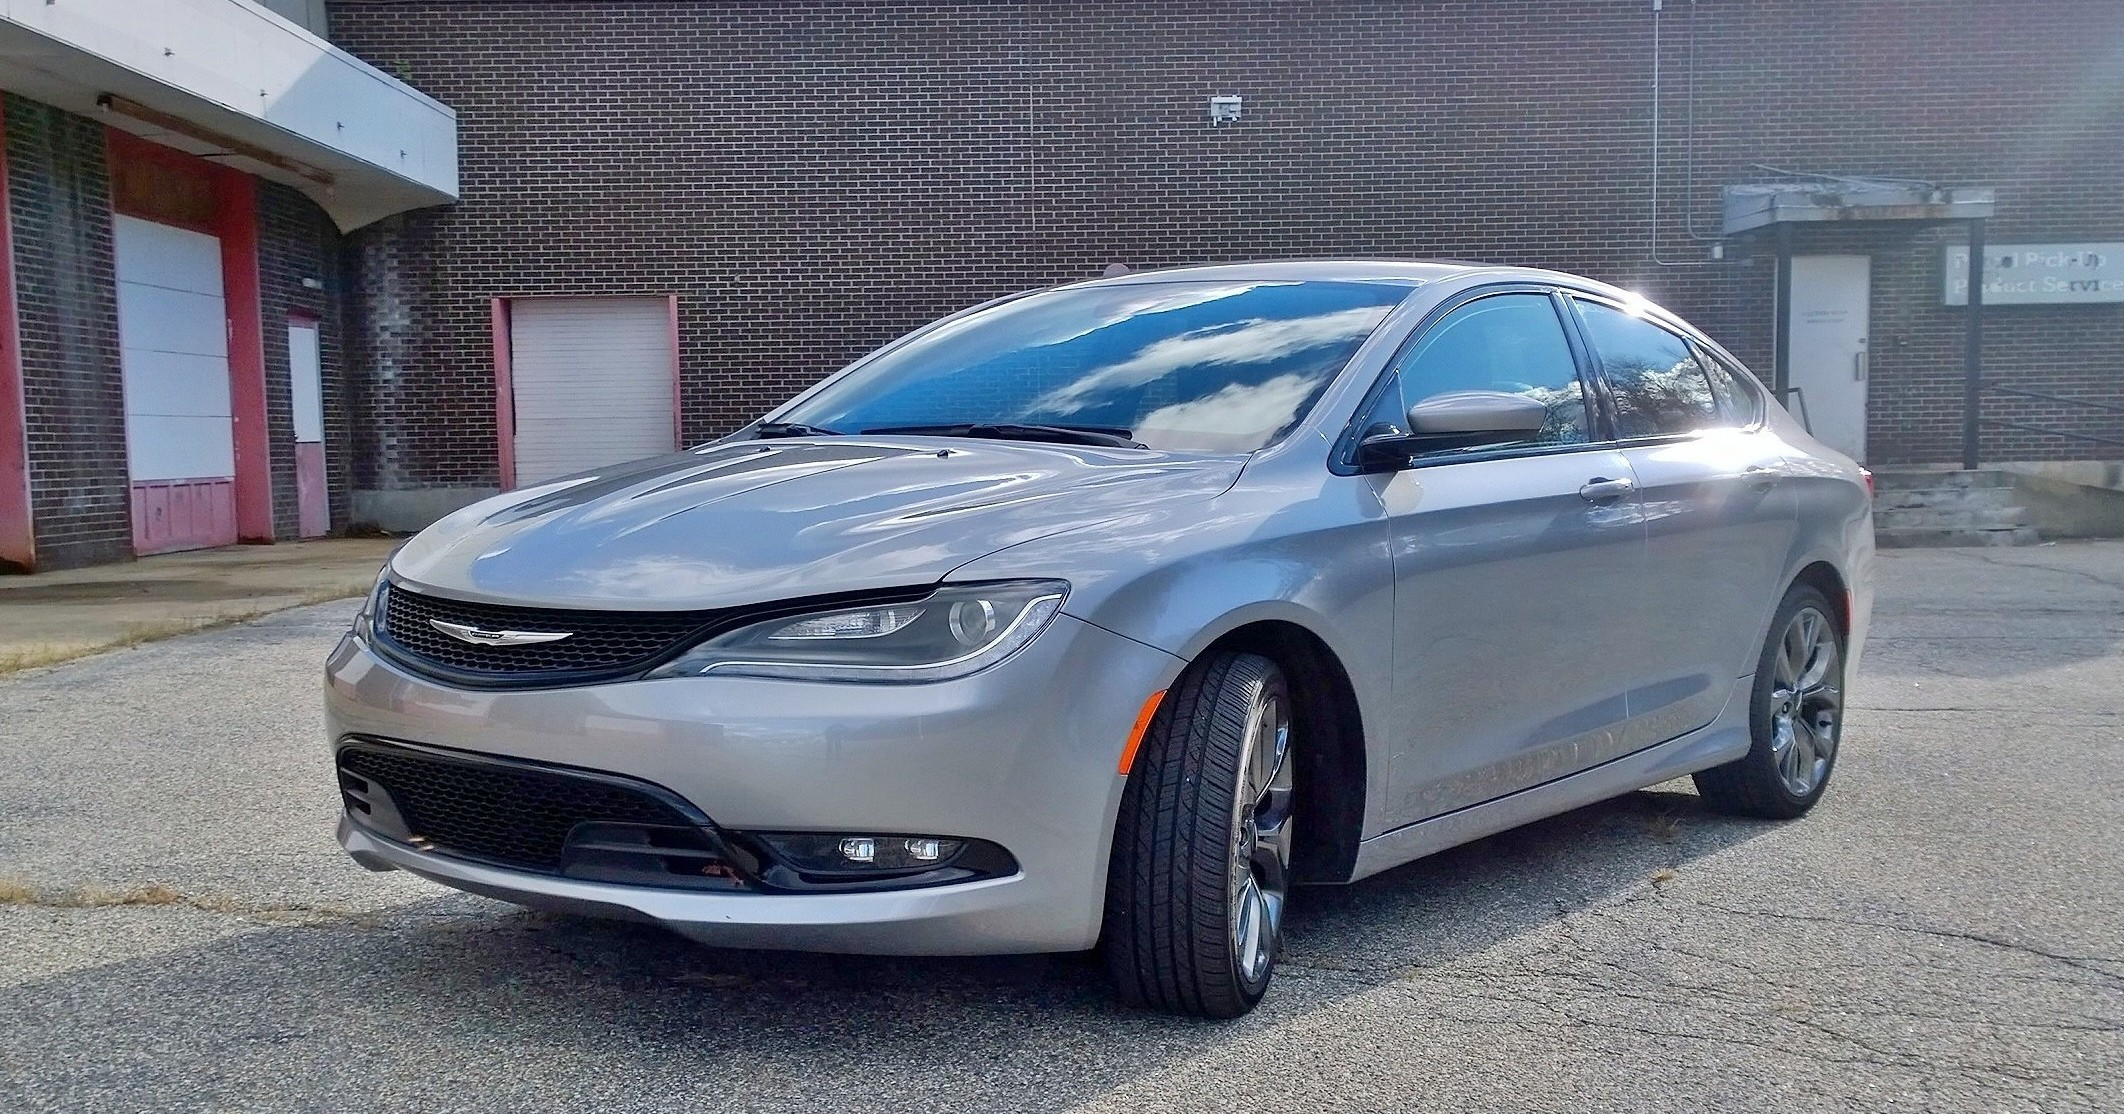 2015 Chrysler 200 Exterior Photos 2017 2018 Best Cars